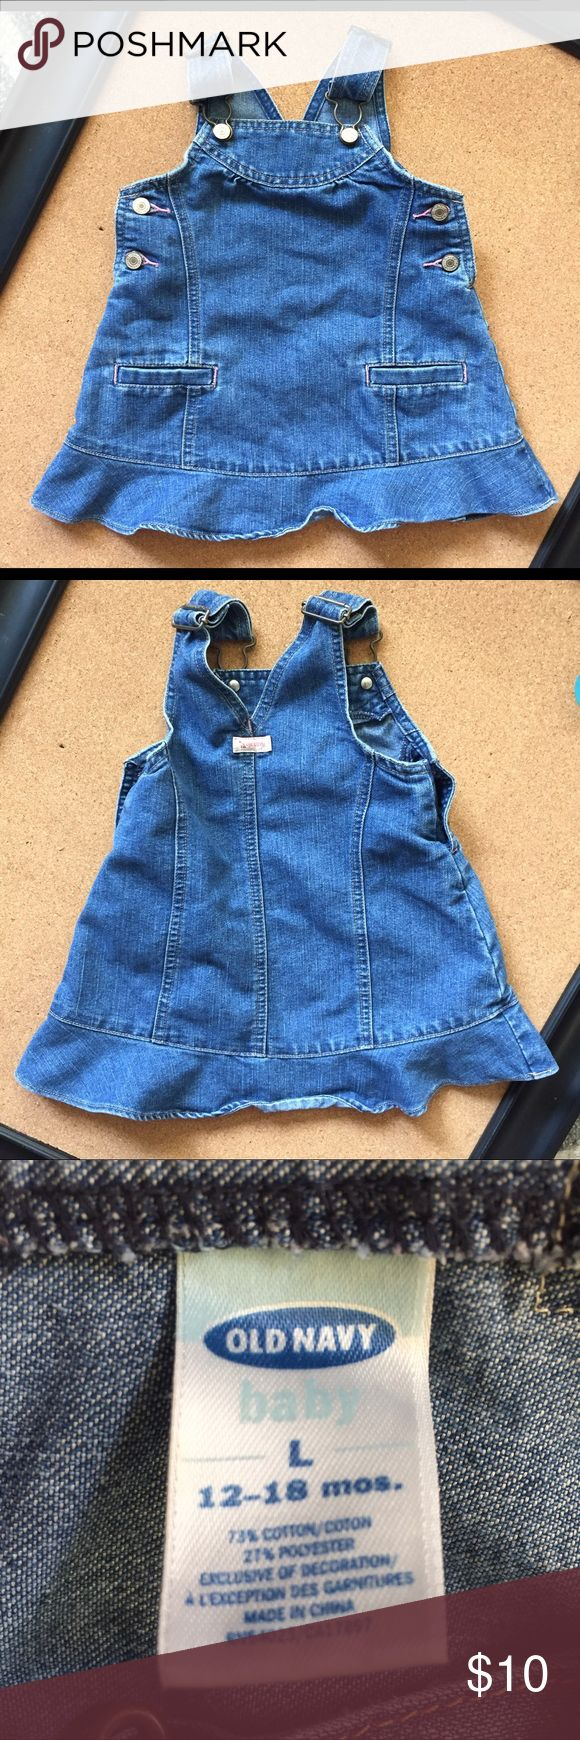 Old navy blue jean jumper skirt sz 18-24 mths Old navy blue jean jumper ruffle skirt. Perfect with boots this fall or with sandals in summer. Perfect for year round wear!! Sz 18-24 mths. Old Navy Dresses Casual